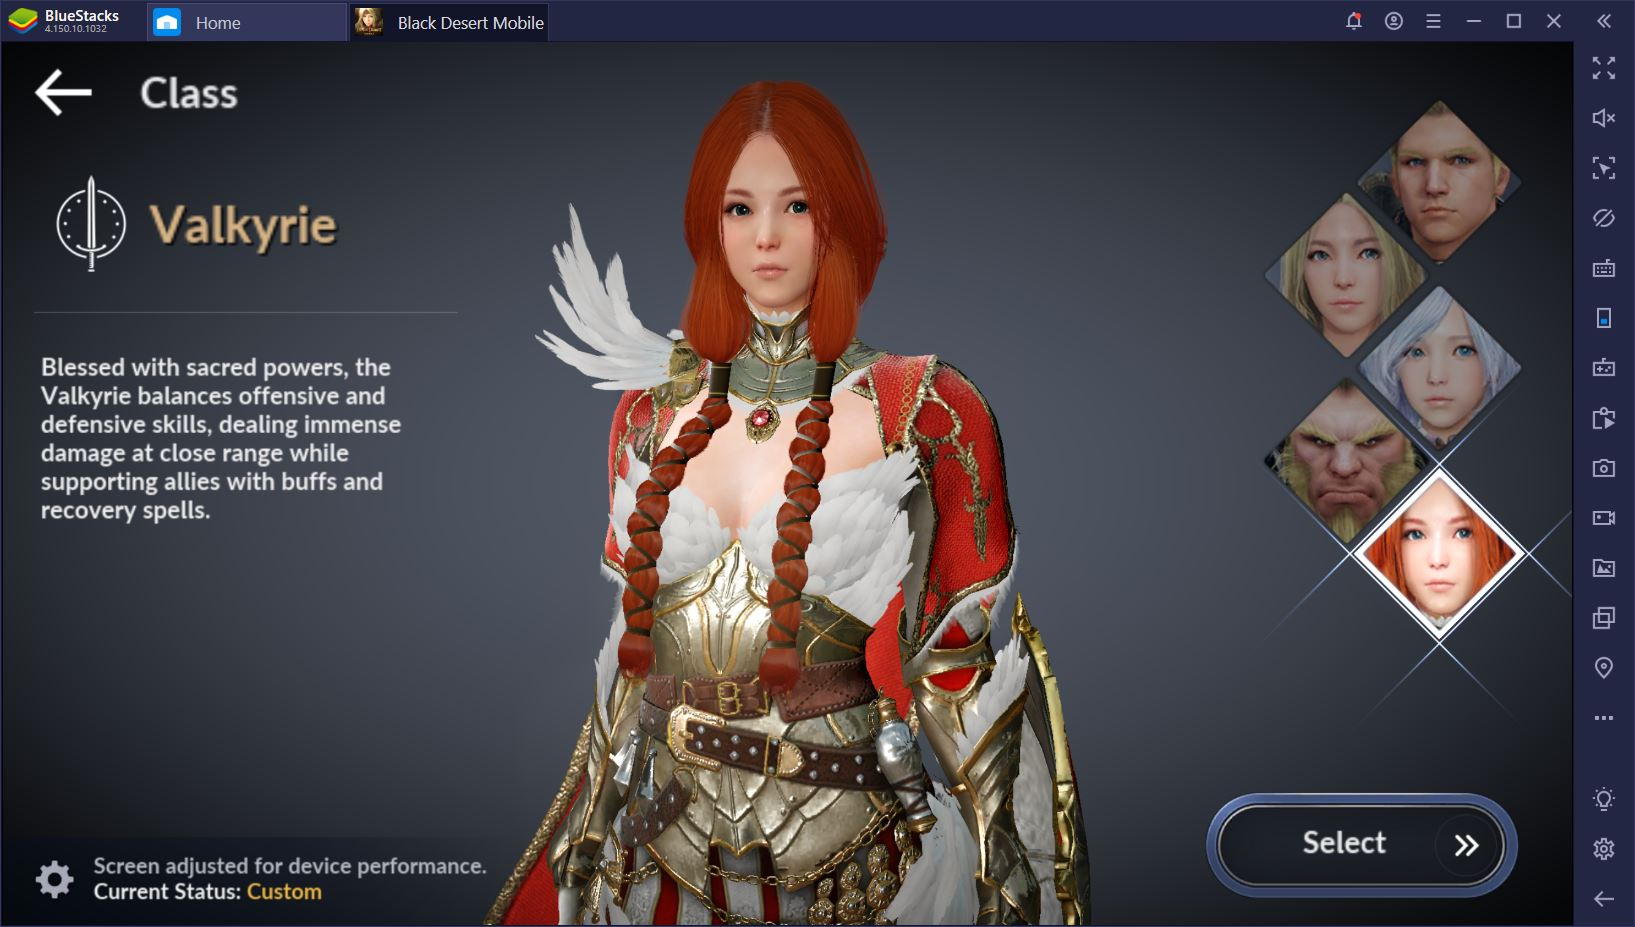 Black Desert Mobile: Which Class Should You Pick?